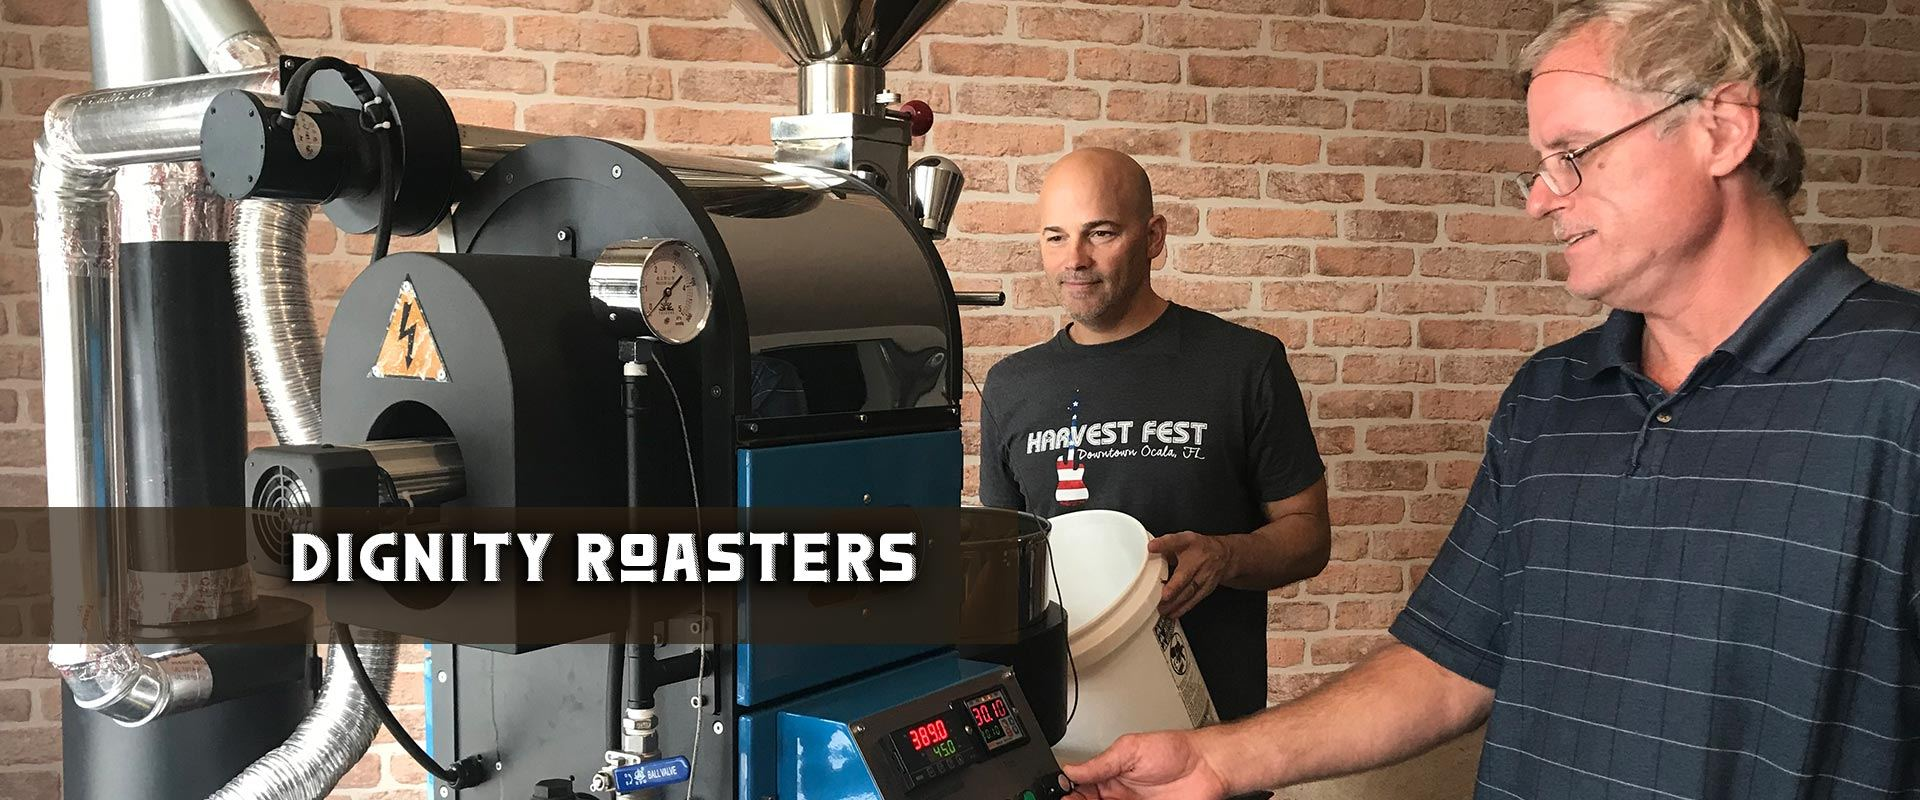 Dignity Roasters. Local coffee roasters. ocala, florida. Ethically sourced